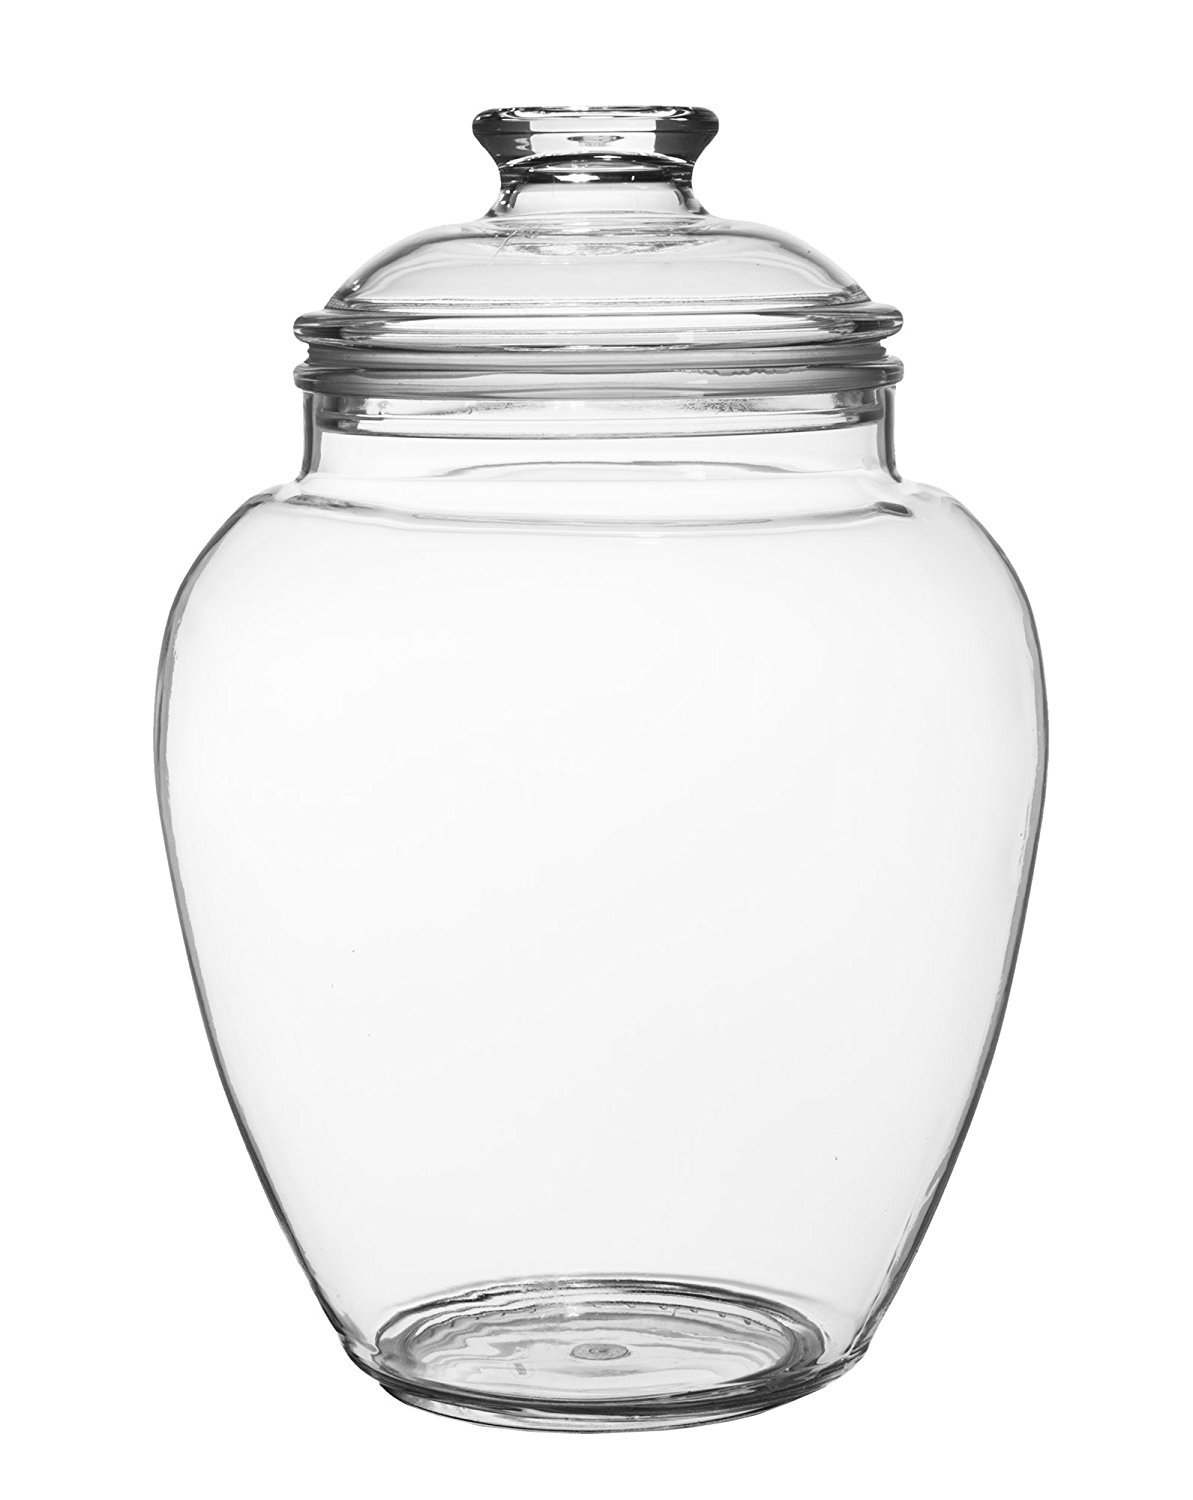 Candy Jar (Acrylic) Acrylichomedesign 2544-XL